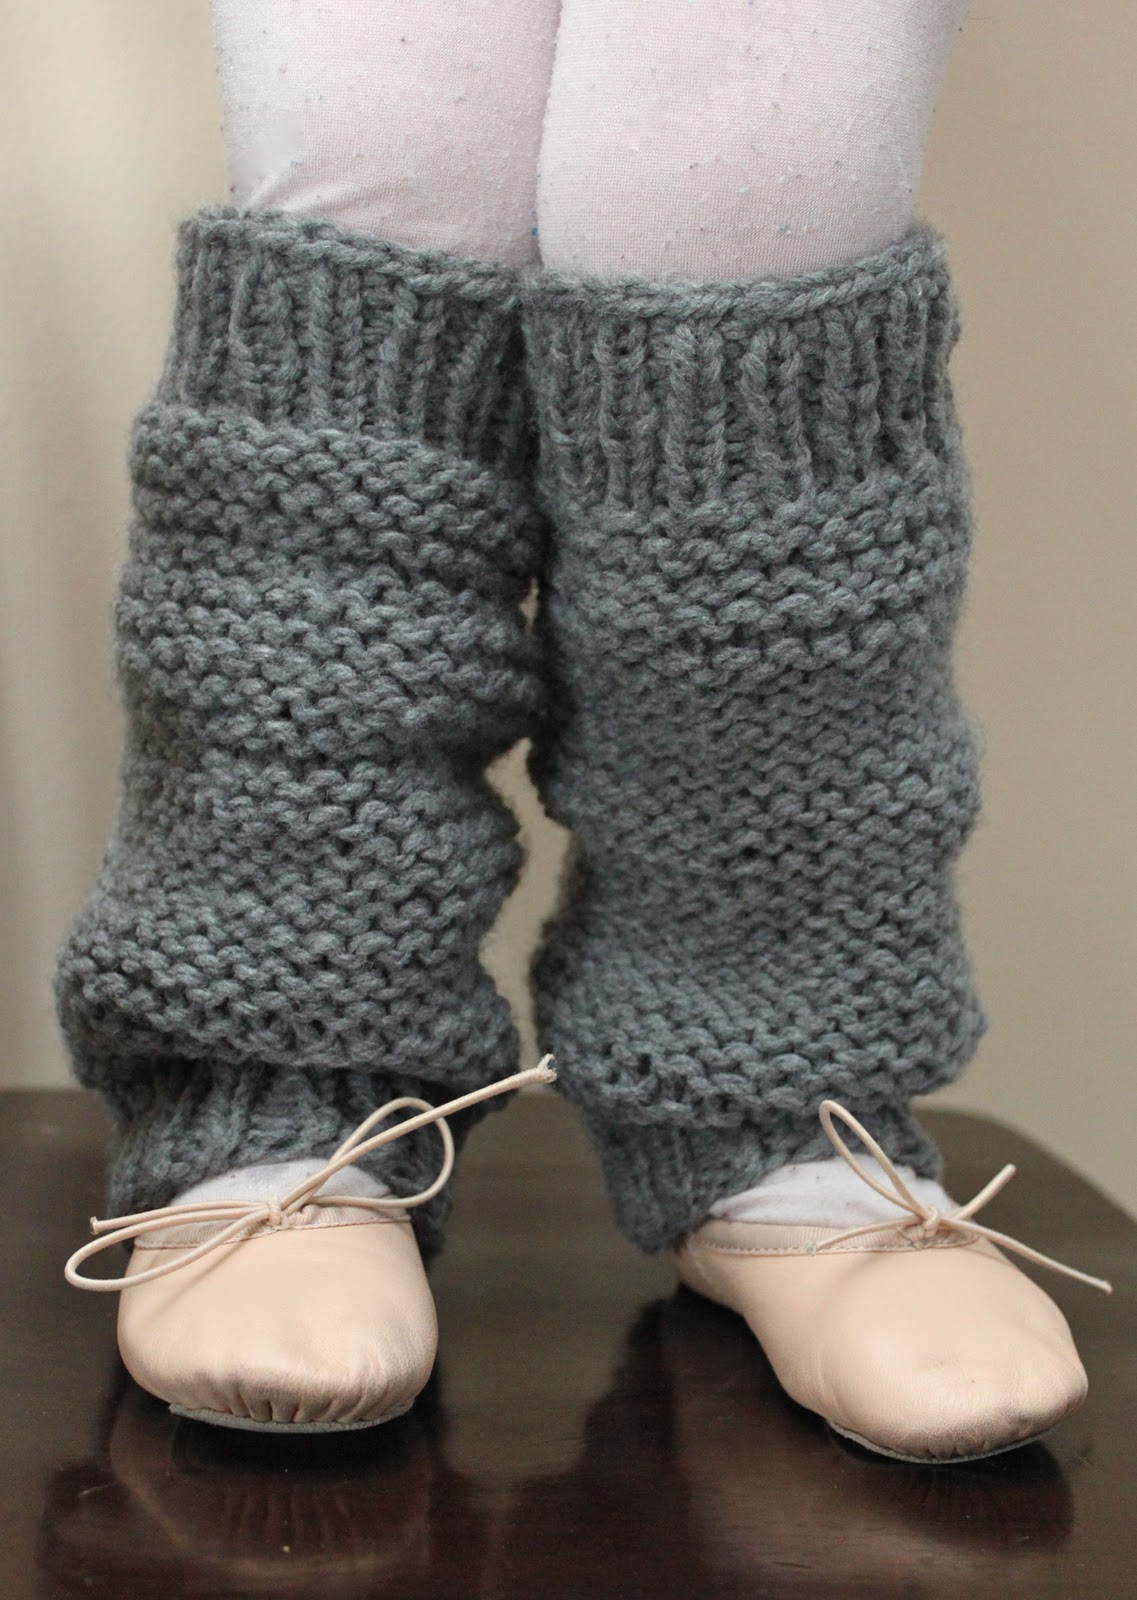 Knitted Leg Warmers little girlsu0027 knit legwarmers {a pattern} MEMSXAB